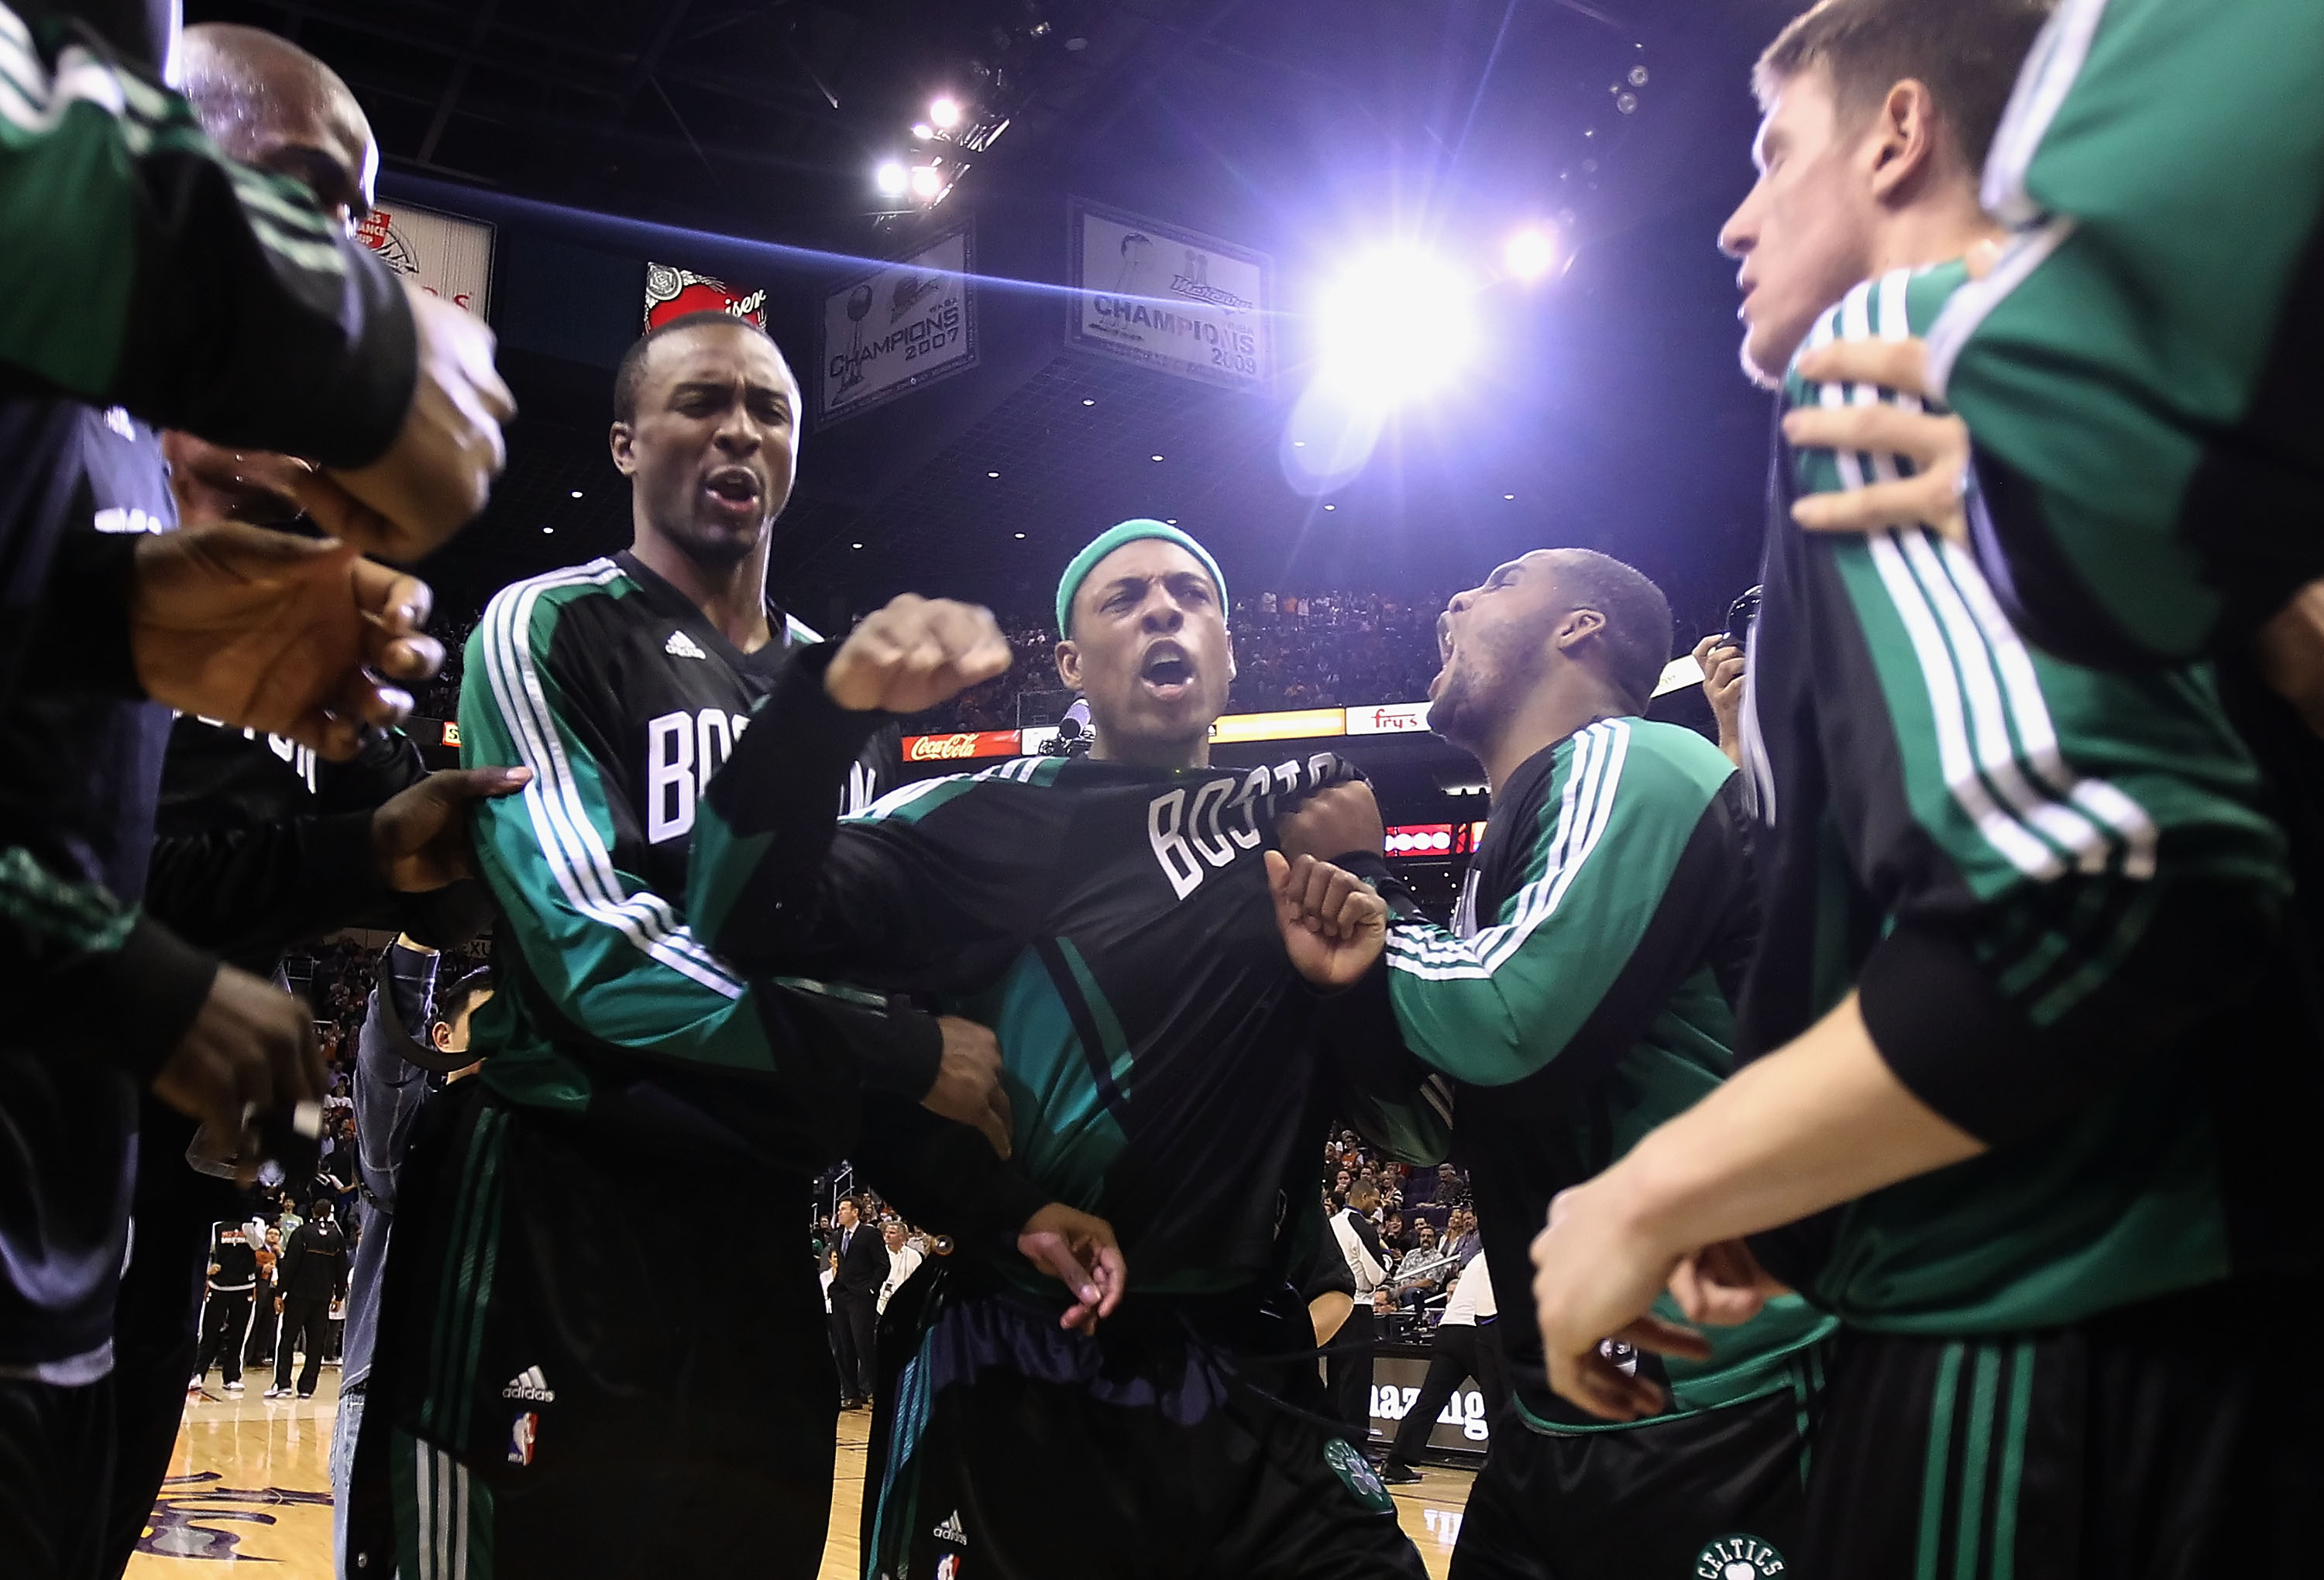 PHOENIX, AZ - JANUARY 28:  Paul Pierce #34 of the Boston Celtics huddles up with teammates before the NBA game against the Phoenix Suns at US Airways Center on January 28, 2011 in Phoenix, Arizona.  The Suns defeated the Celtics 88-71.  NOTE TO USER: User